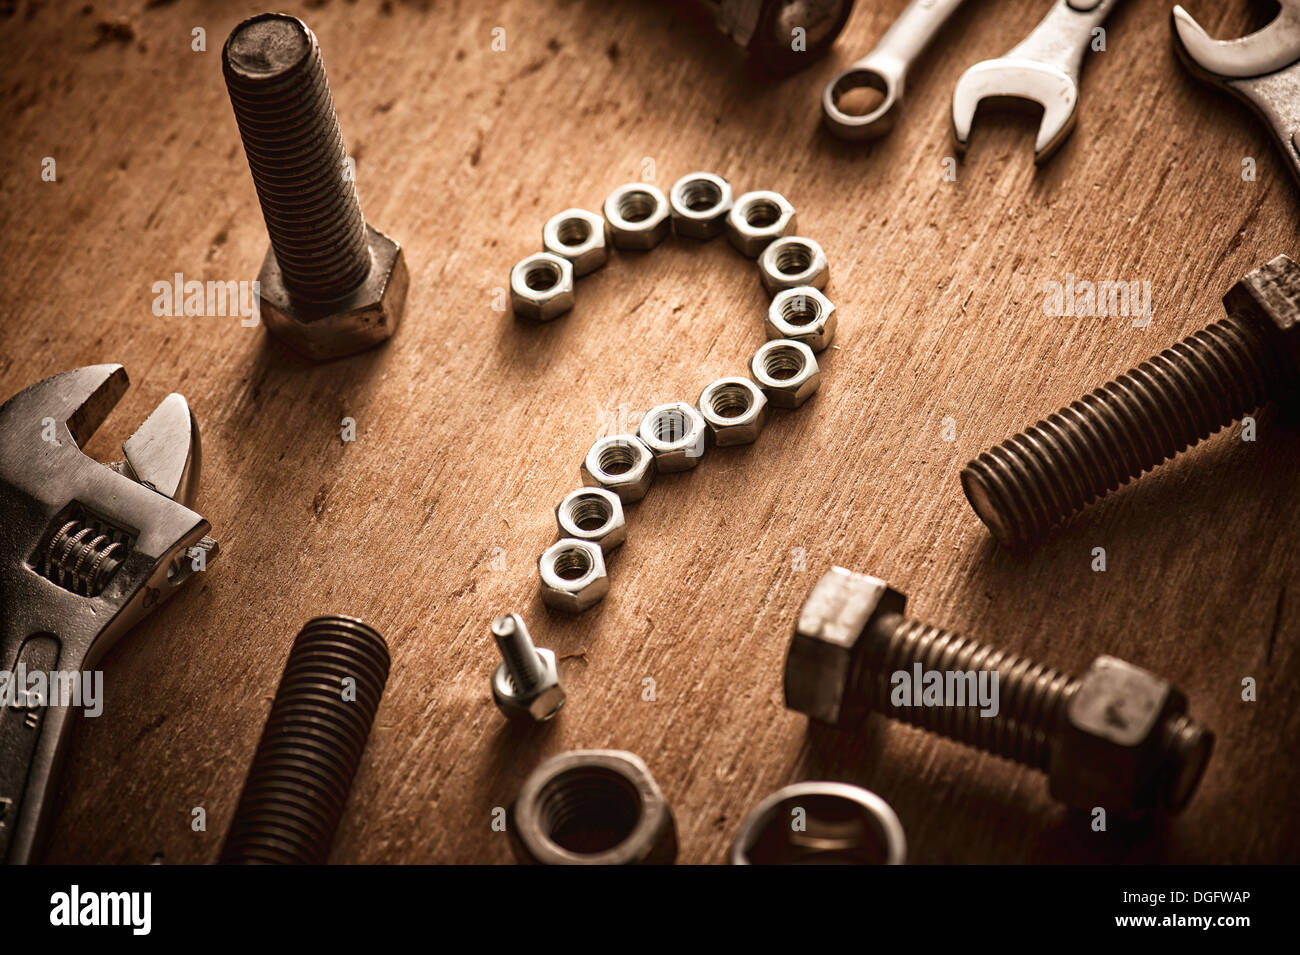 tools making a question mark shape stock photo 61814782 alamy